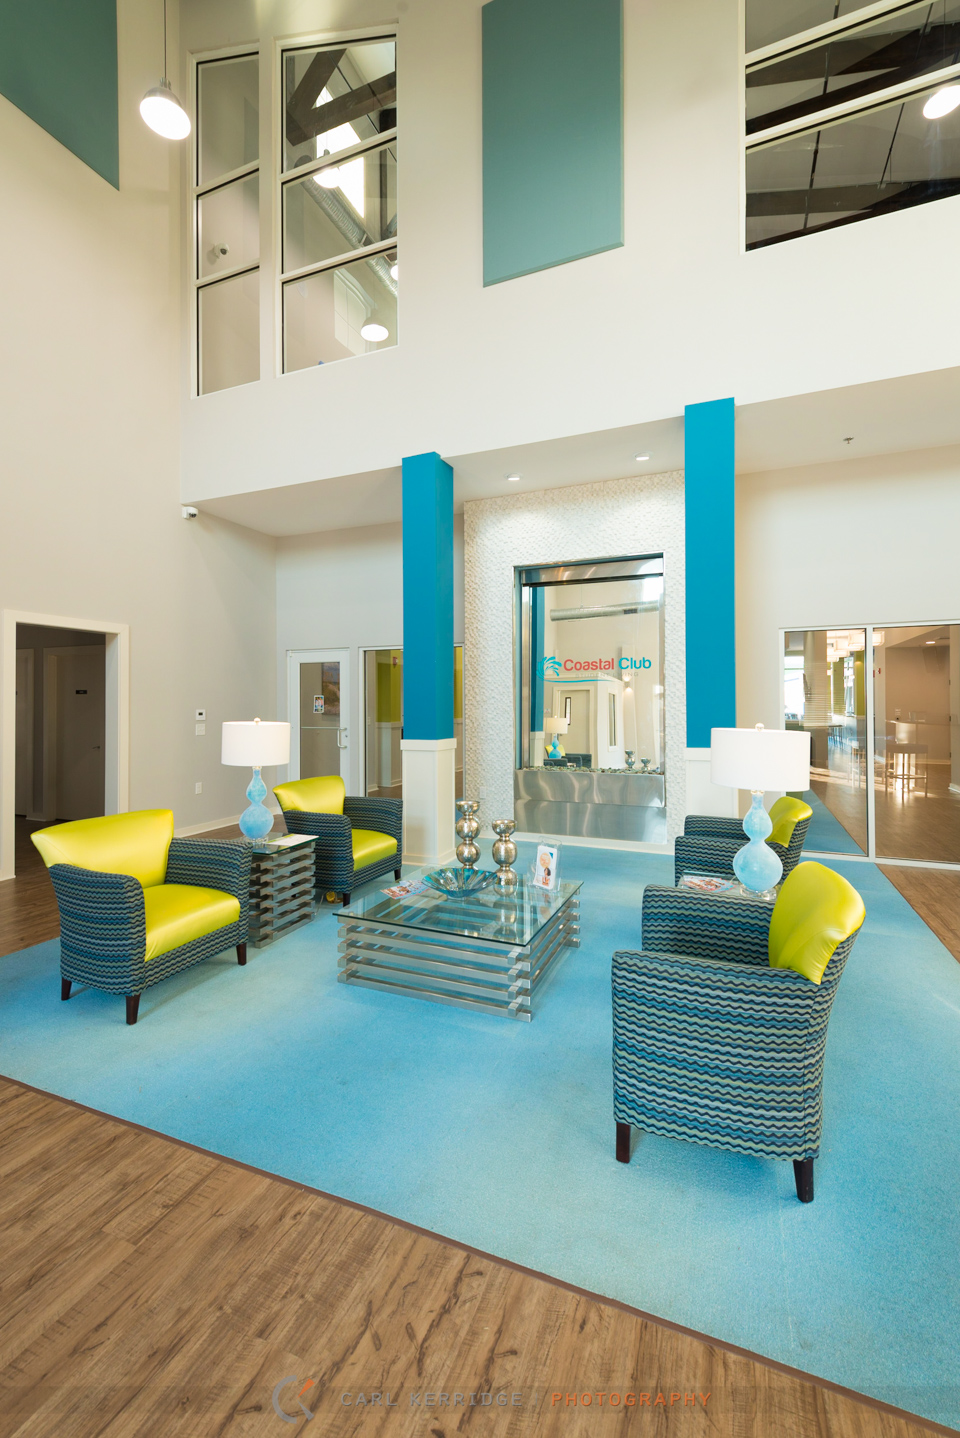 Commercial photography of the main entrance hall at Coastal Club, interior designs, by e3 studios